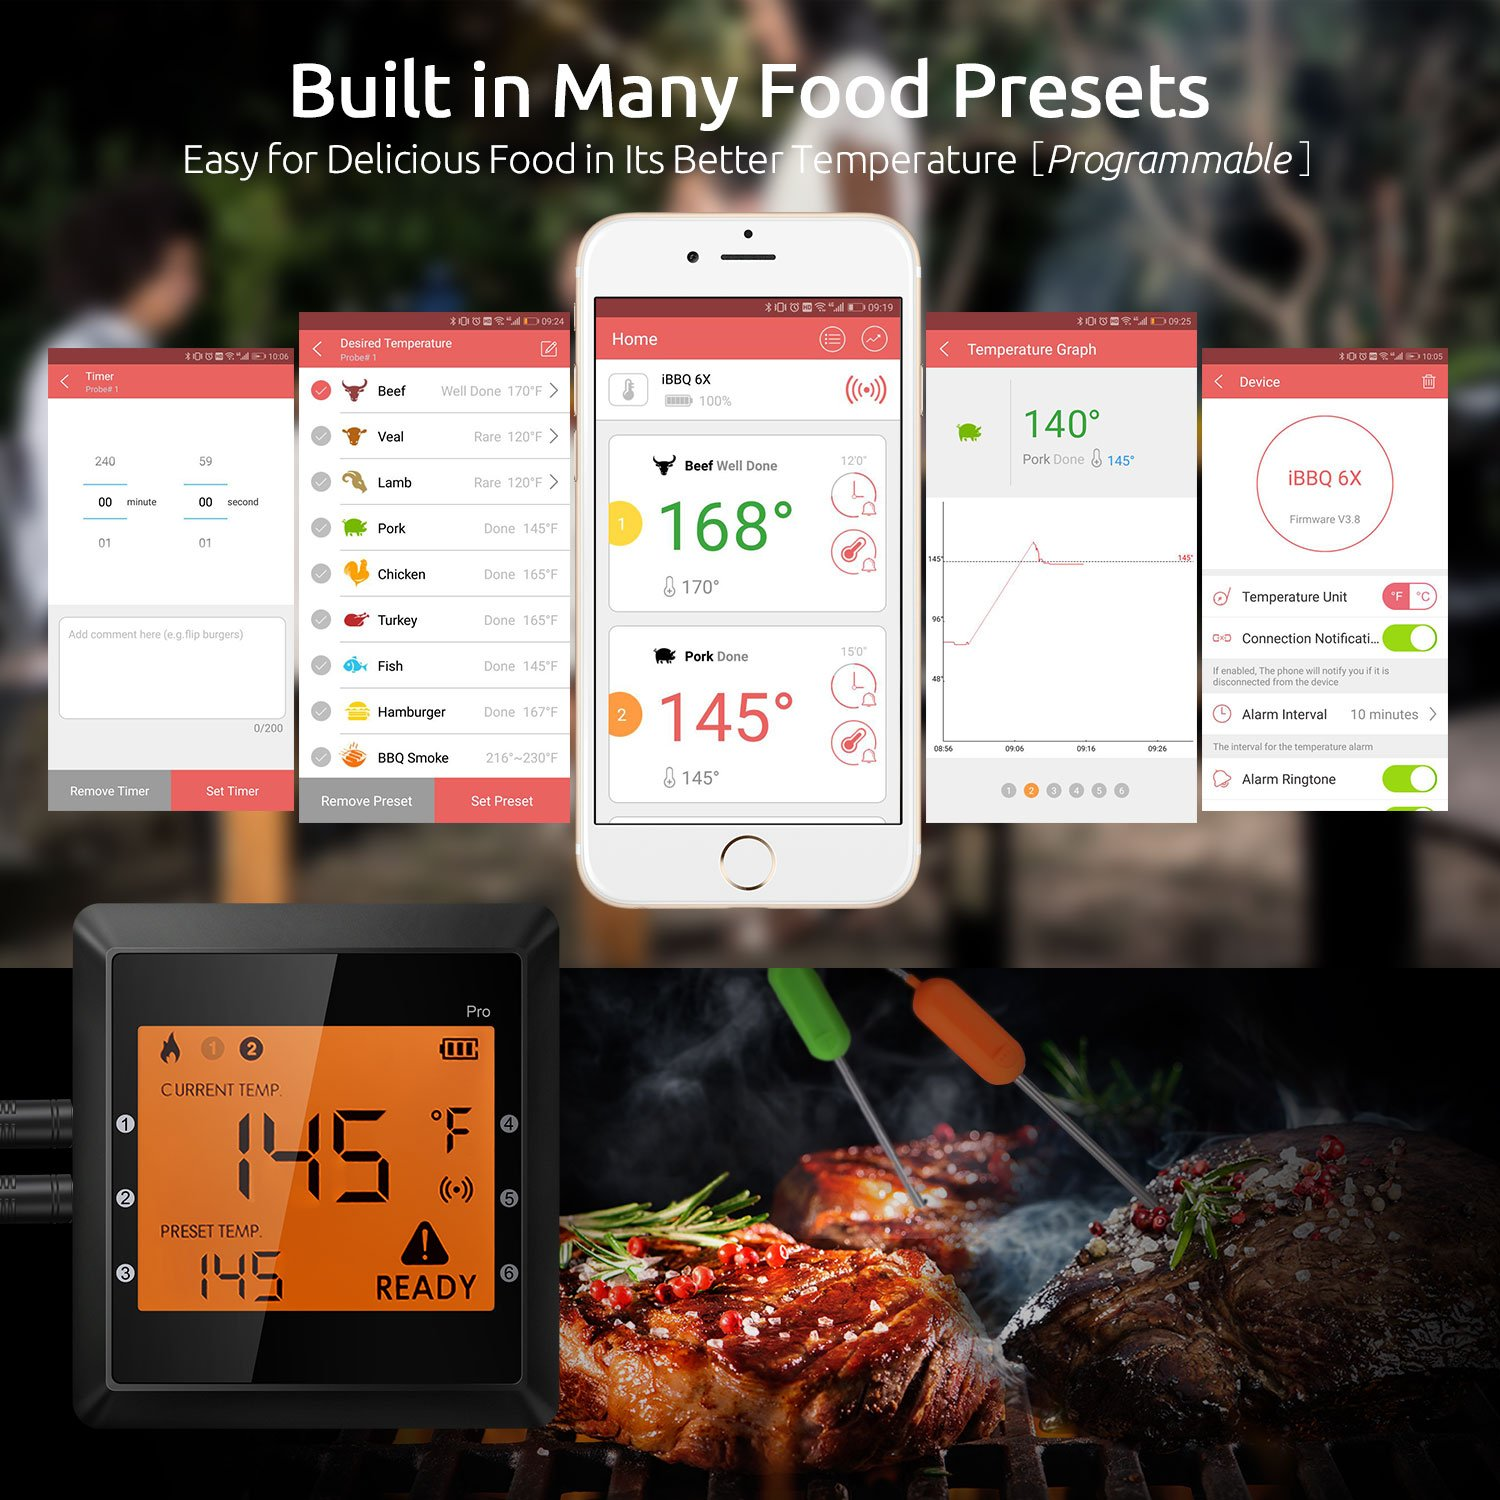 Meat Thermometer Wireless Smart Digital Bluetooth Super Fast Instant Read 6 Long Probes Grill Thermometer, Phone App Wifi Remote Food Thermometer for Kitchen Cooking Food BBQ Grill Candy Smoker ( IOS & Android )